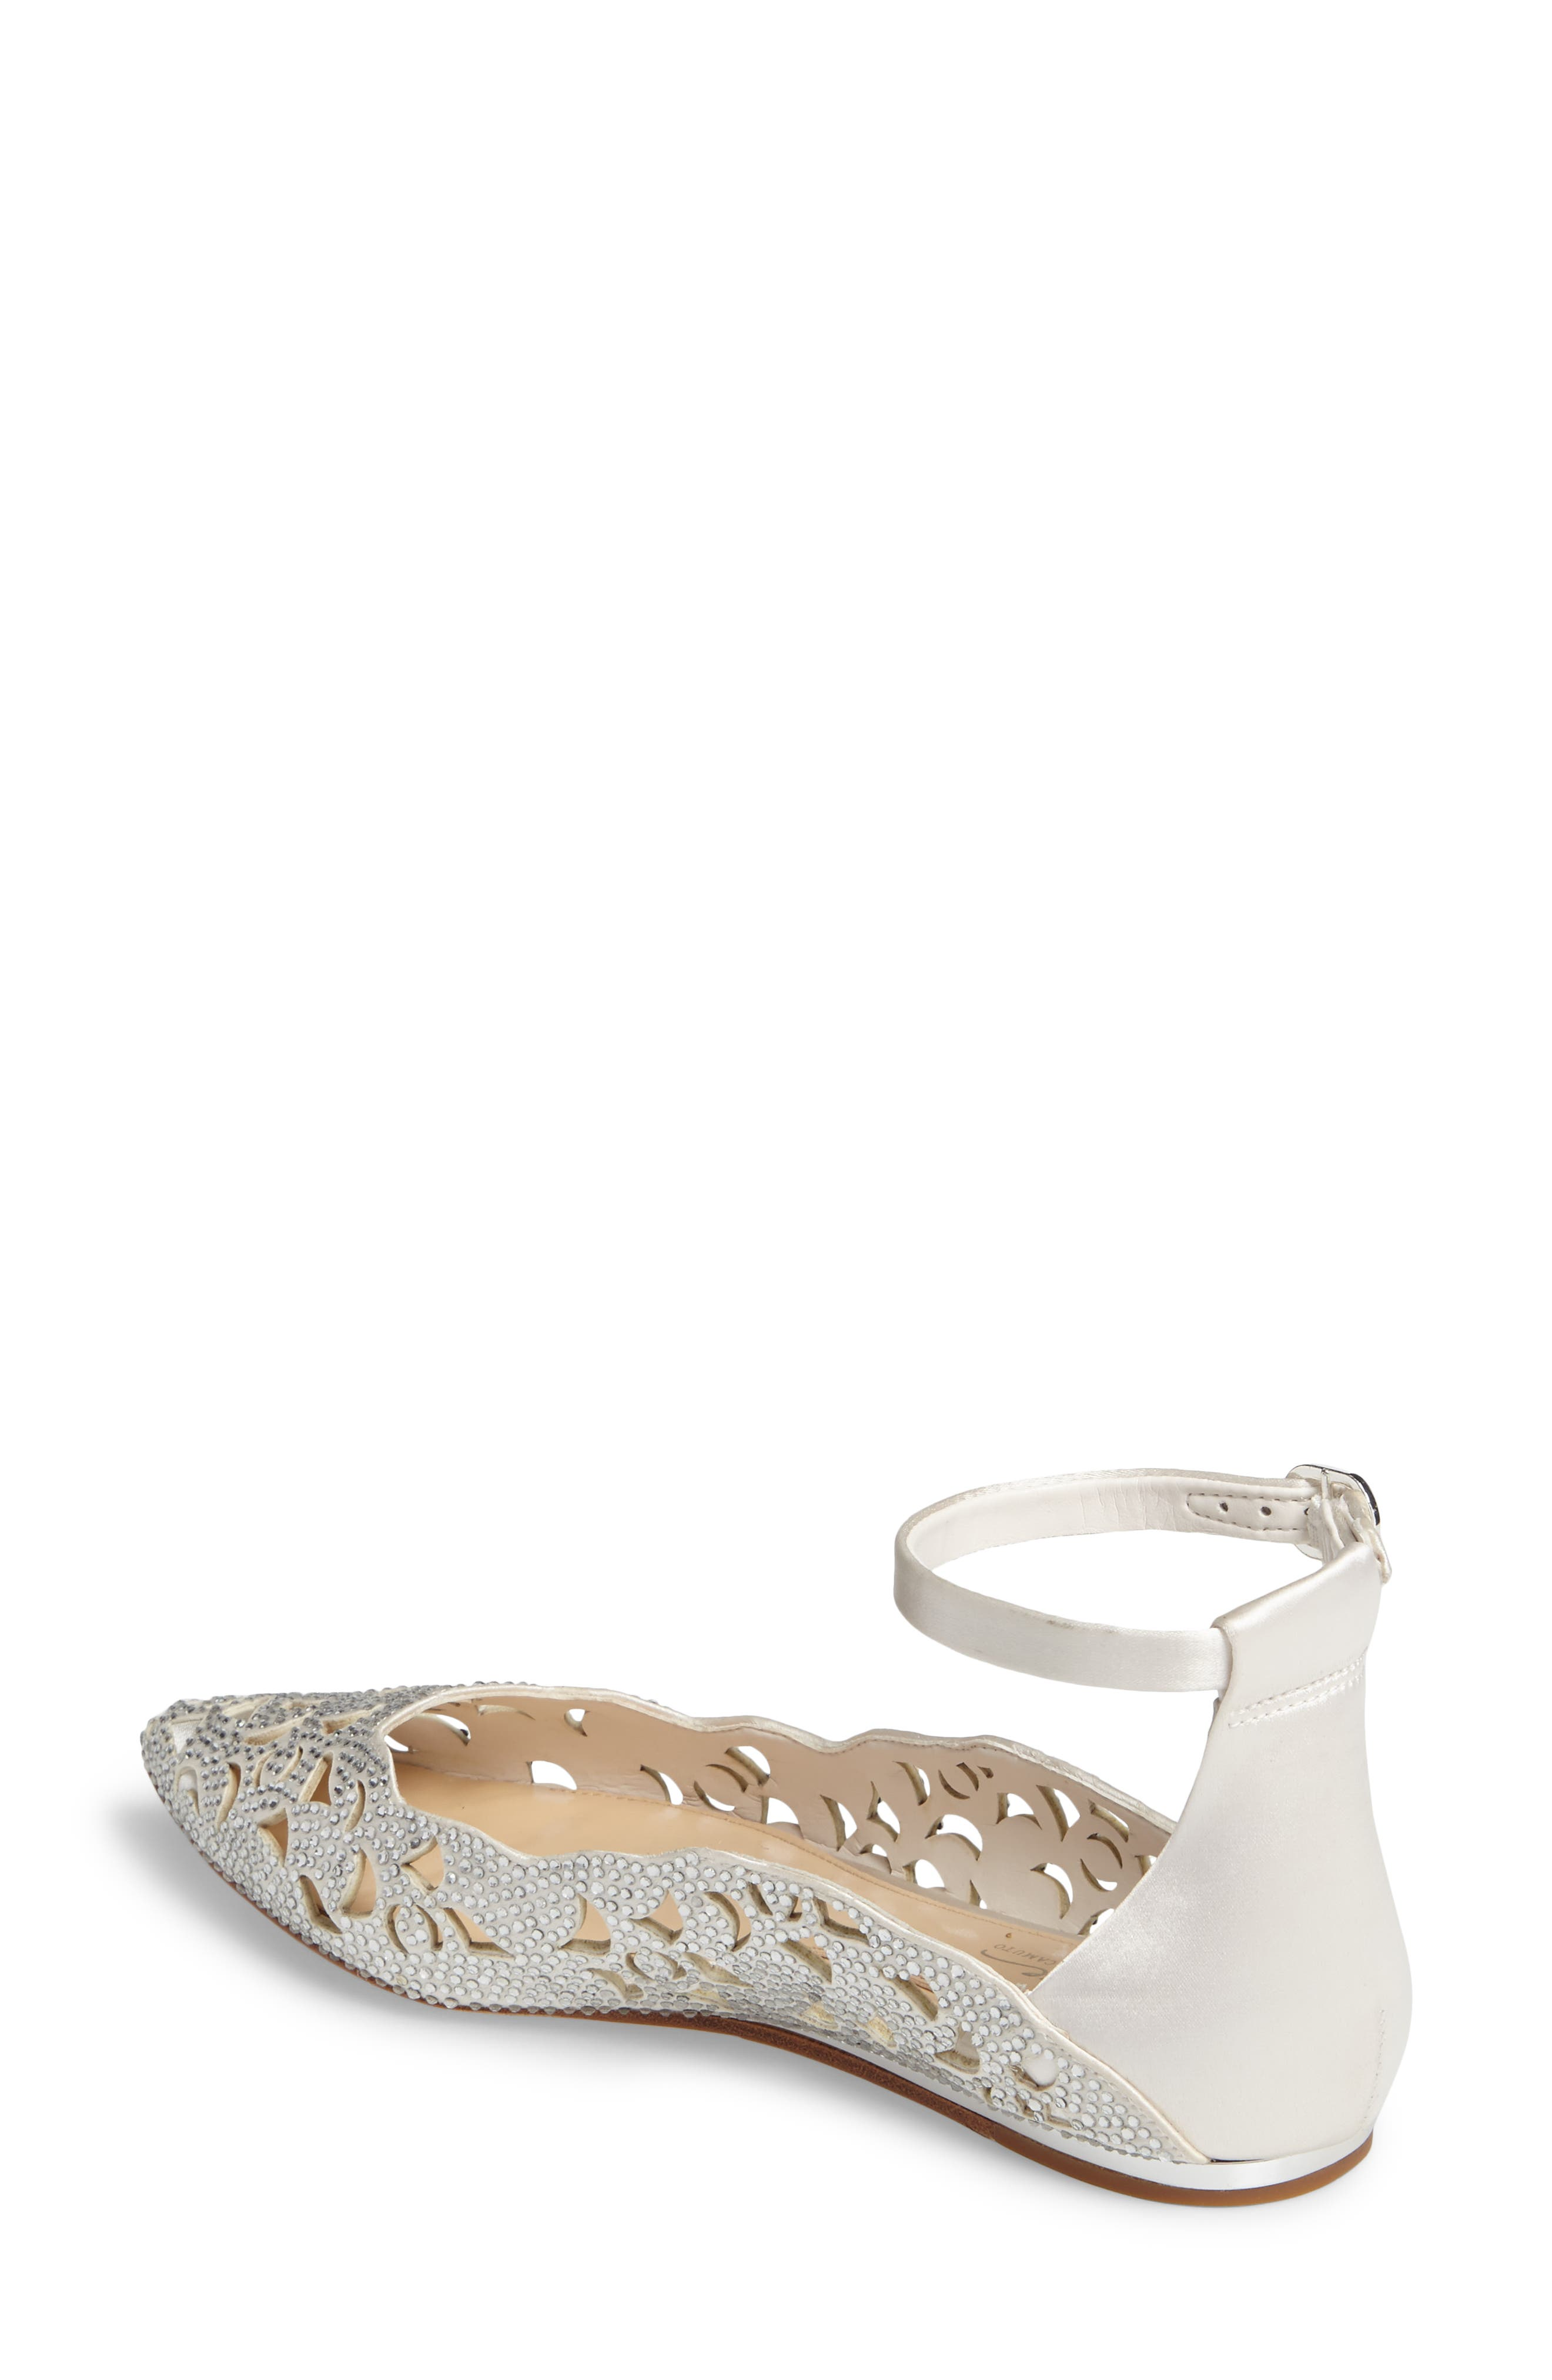 Garyn Ankle Strap Flat,                             Alternate thumbnail 2, color,                             Ivory Satin